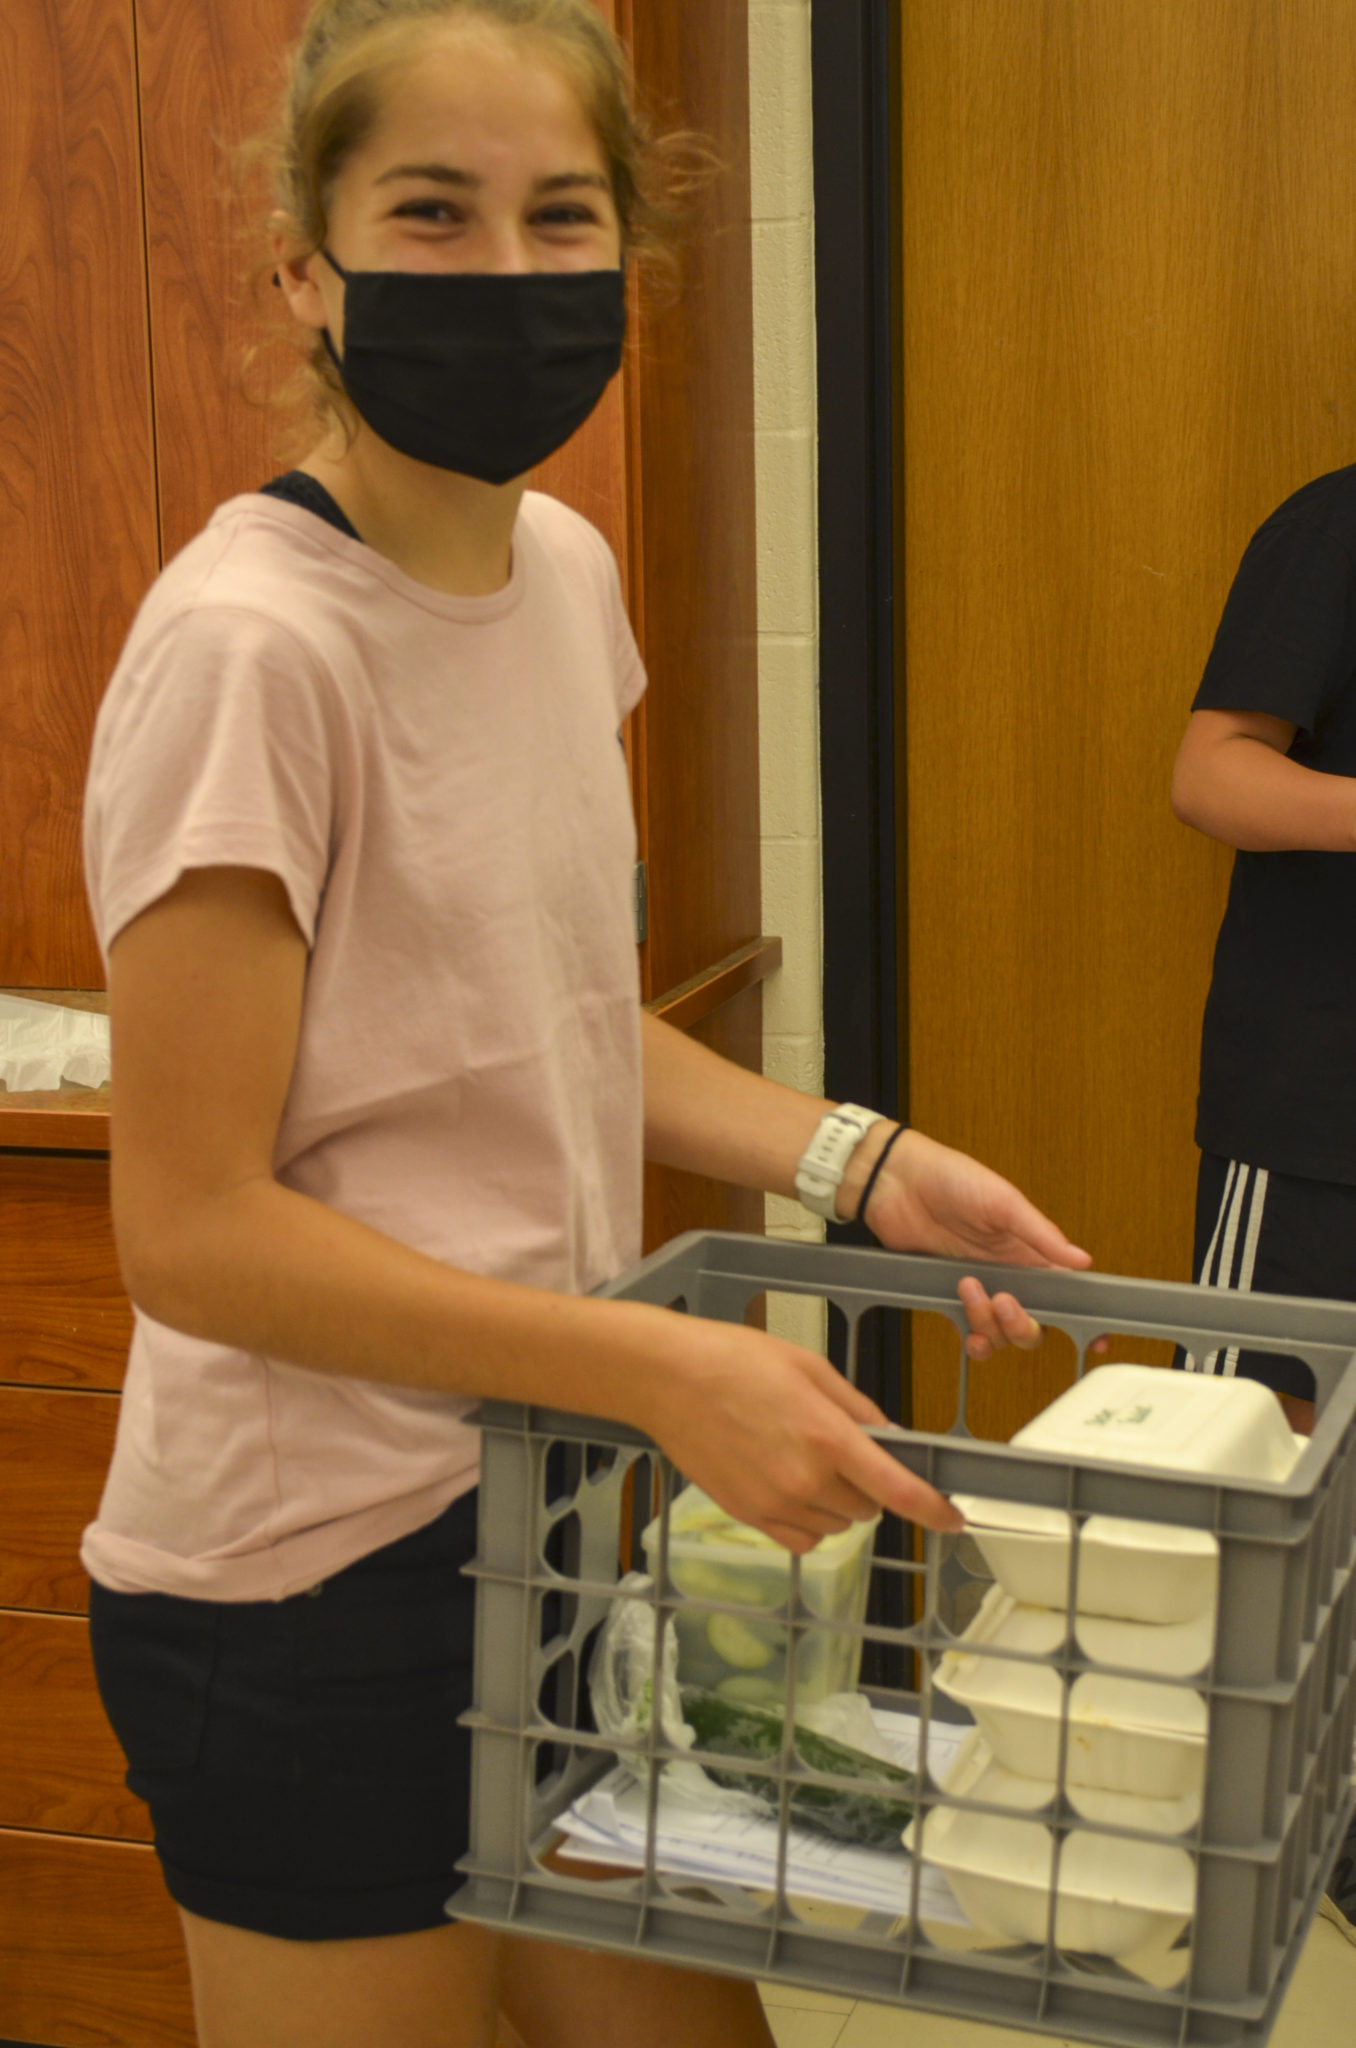 student carrying eggs in milk carton crate